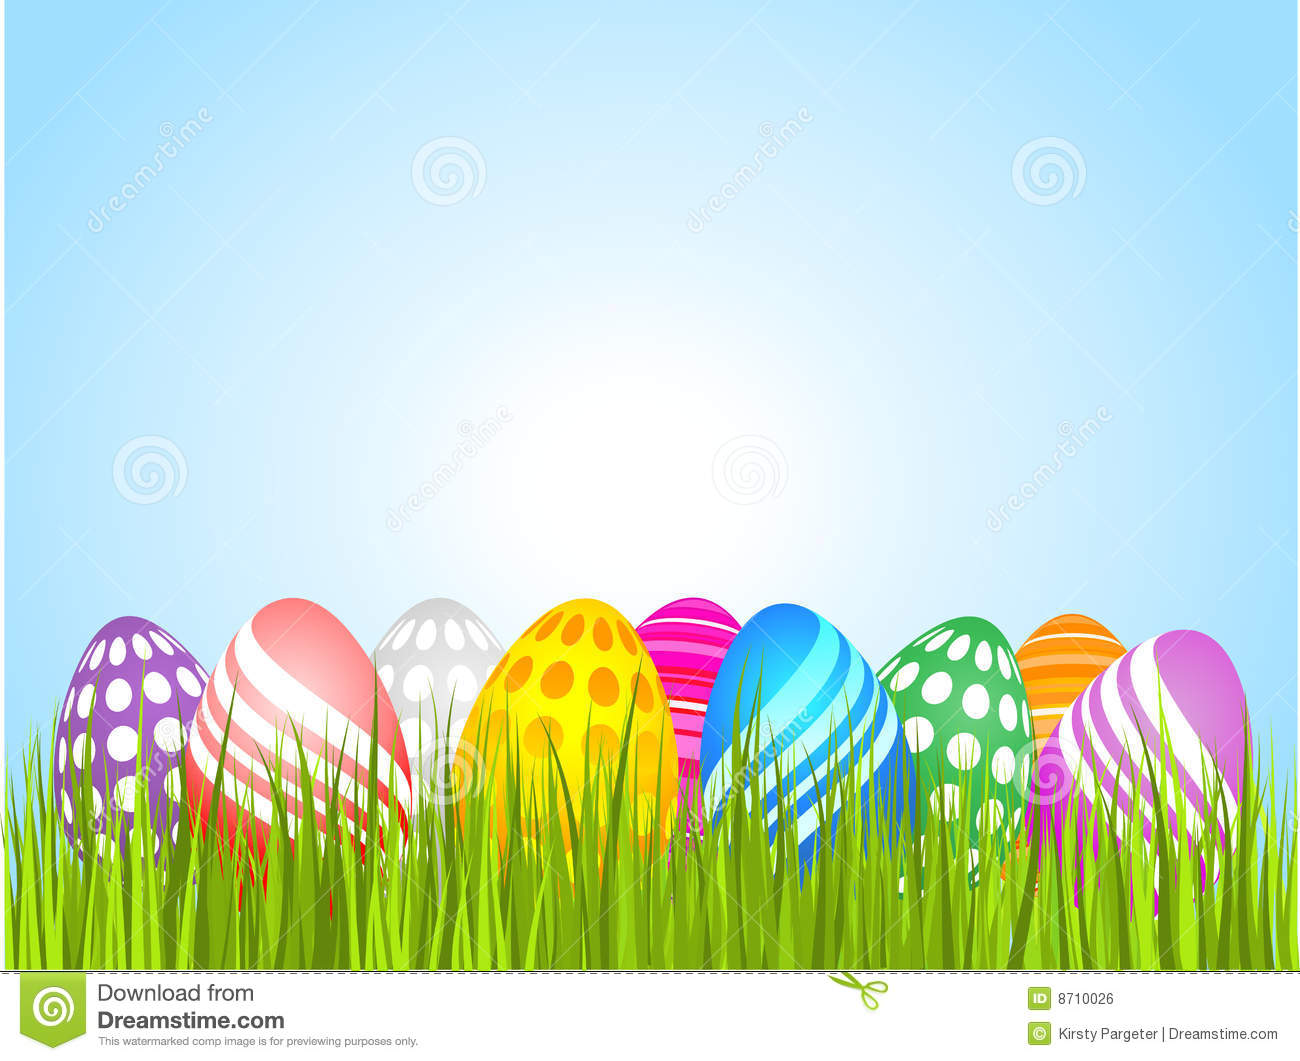 Easter Eggs In Grass Royalty Free Stock Image - Image: 8710026